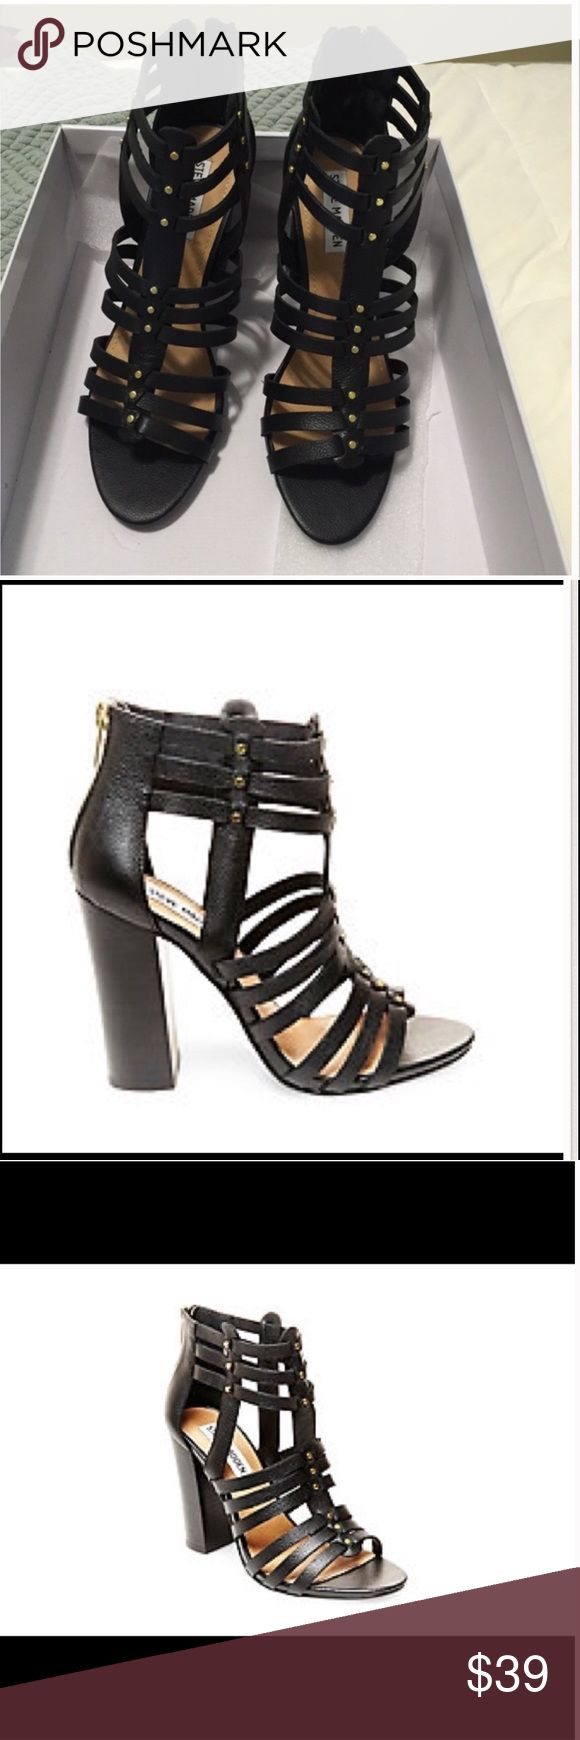 Bnwt Steve Madden black heel size 8NWT Perfect for summer and fall and brand new in box Steve Madden black Sofia leather heels with gold details in size 8 Steve Madden Shoes Heels